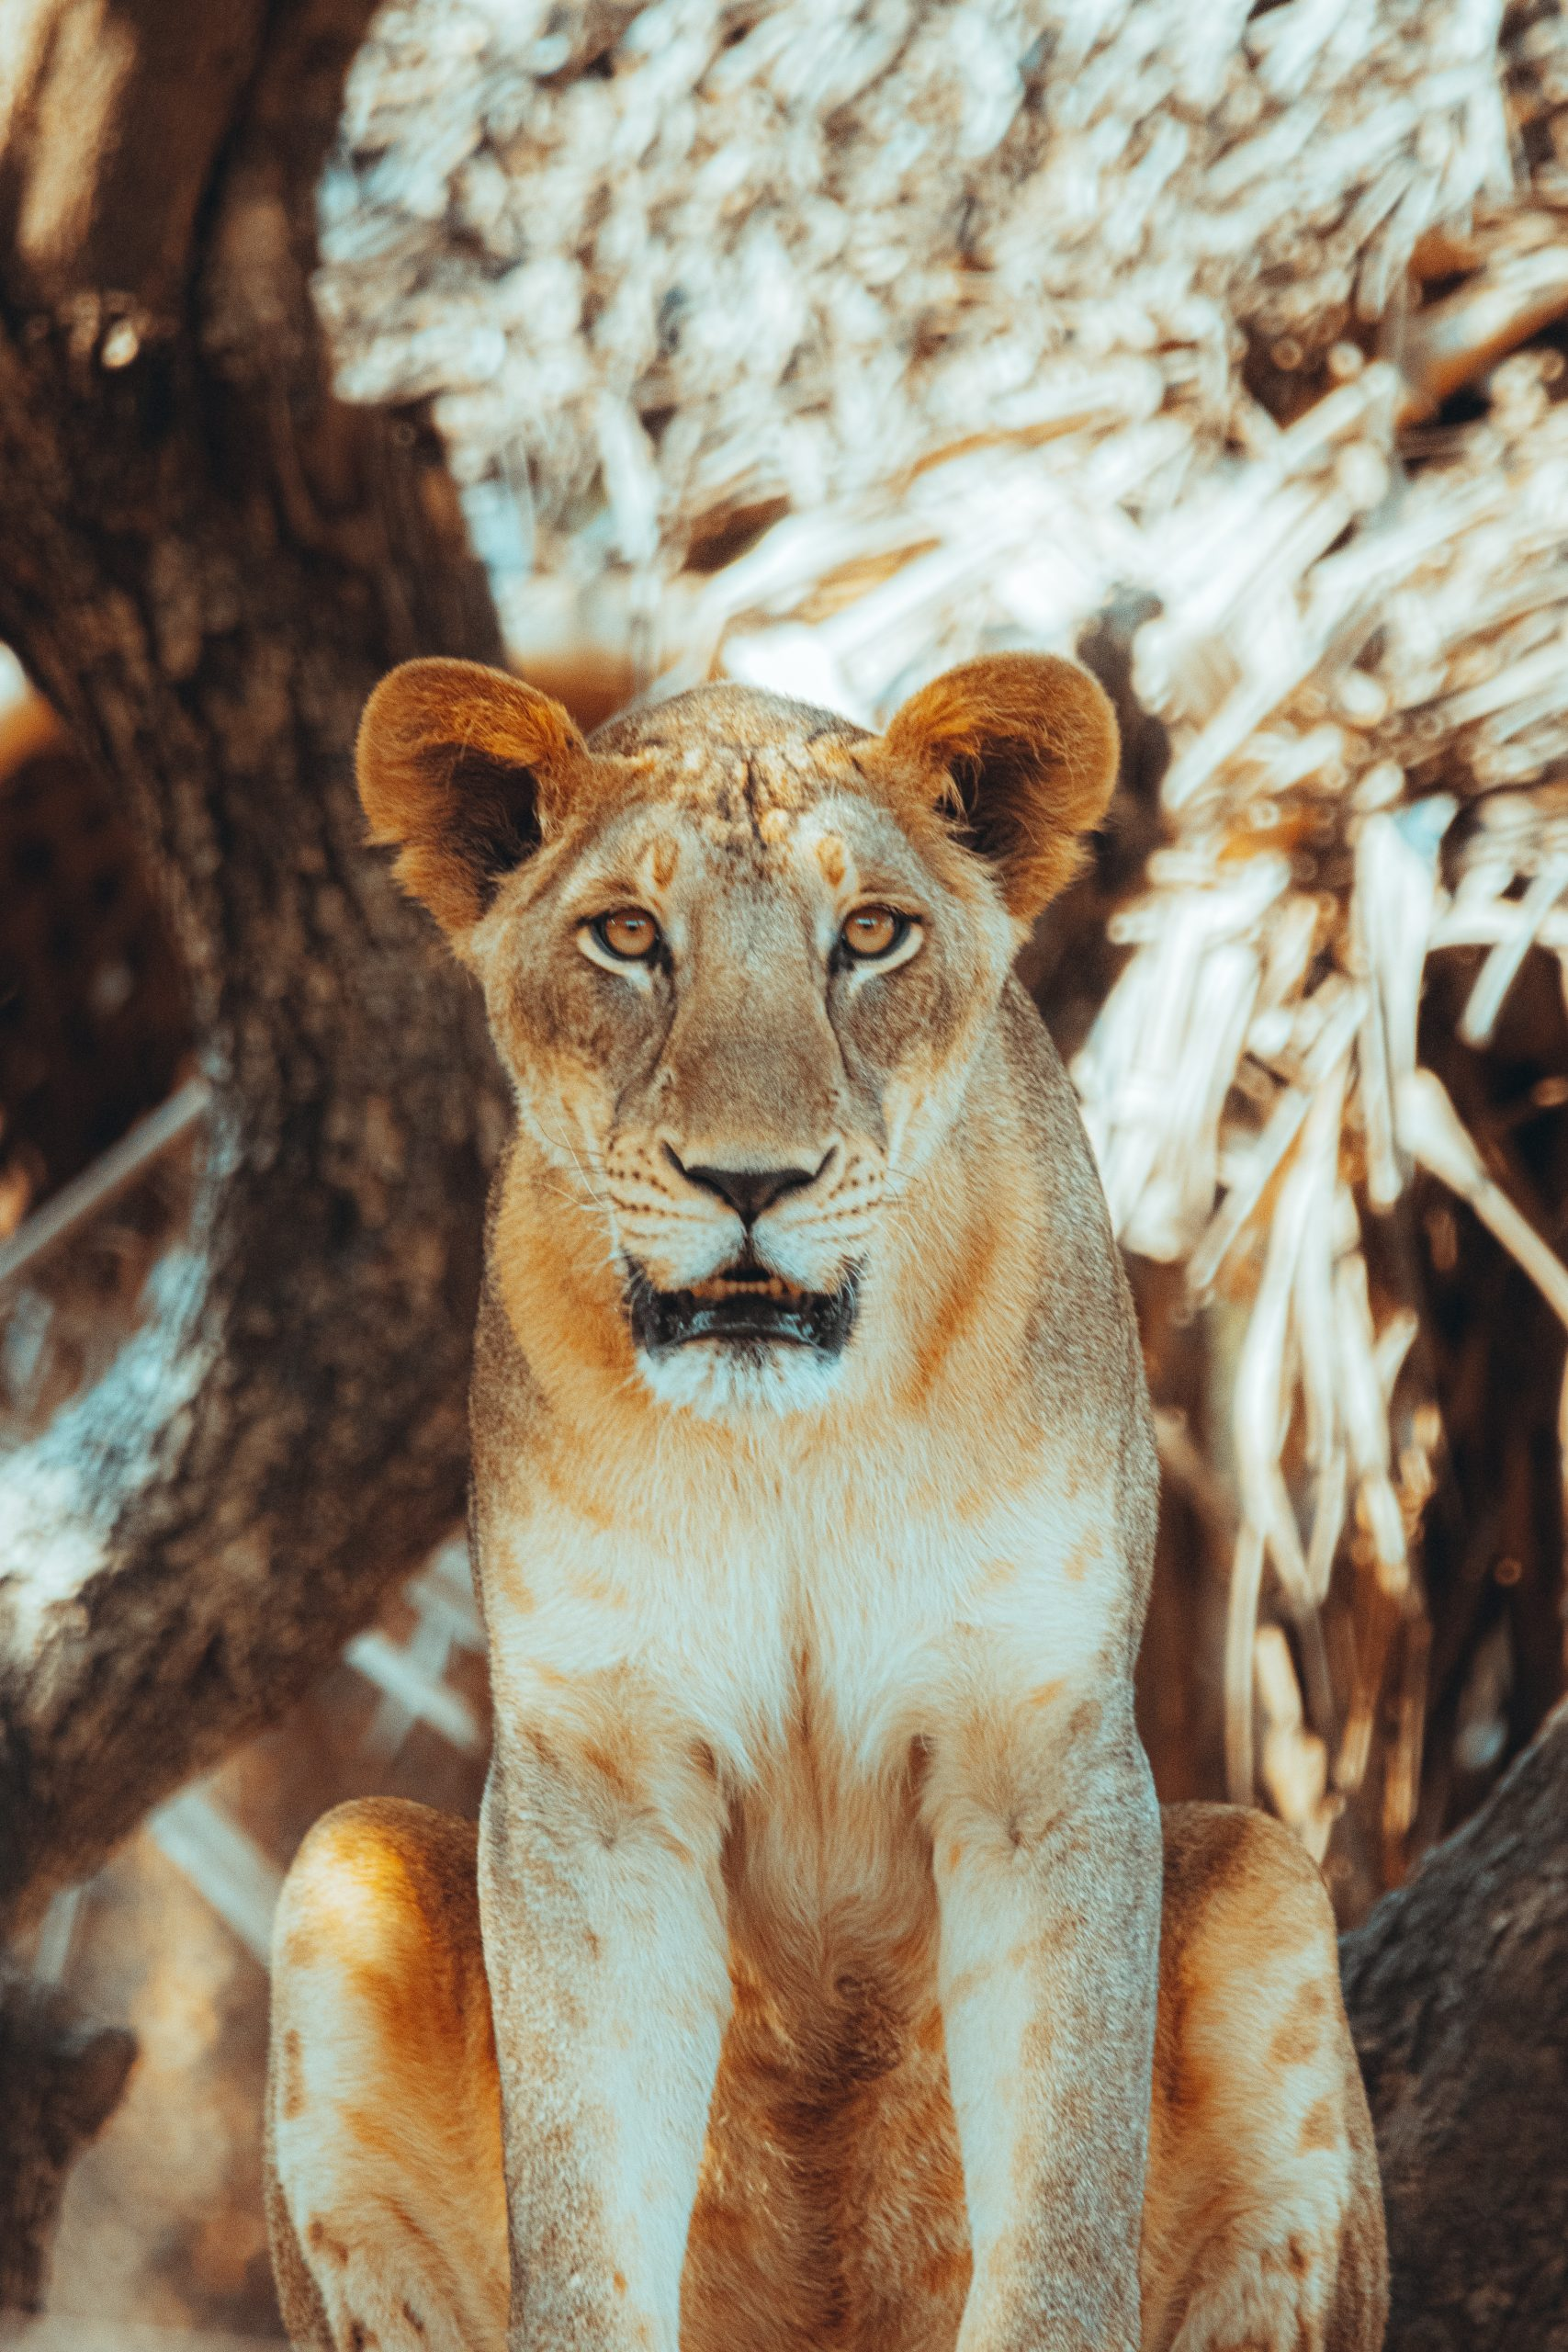 Deadly Lion staring at camera